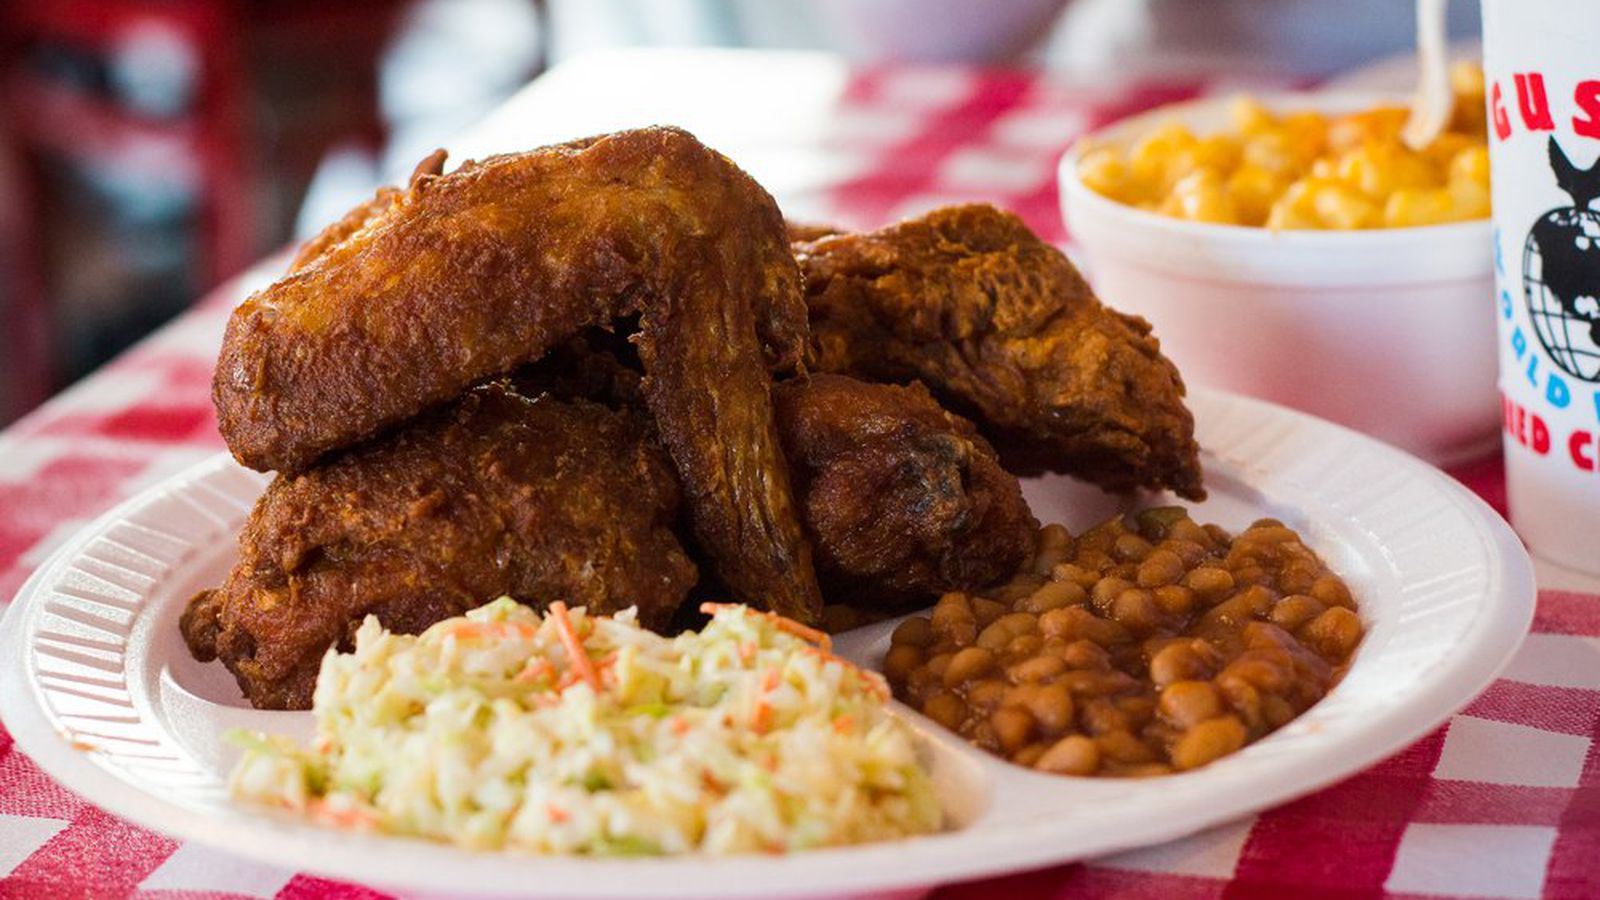 orld famous fried chicken - 1000×666